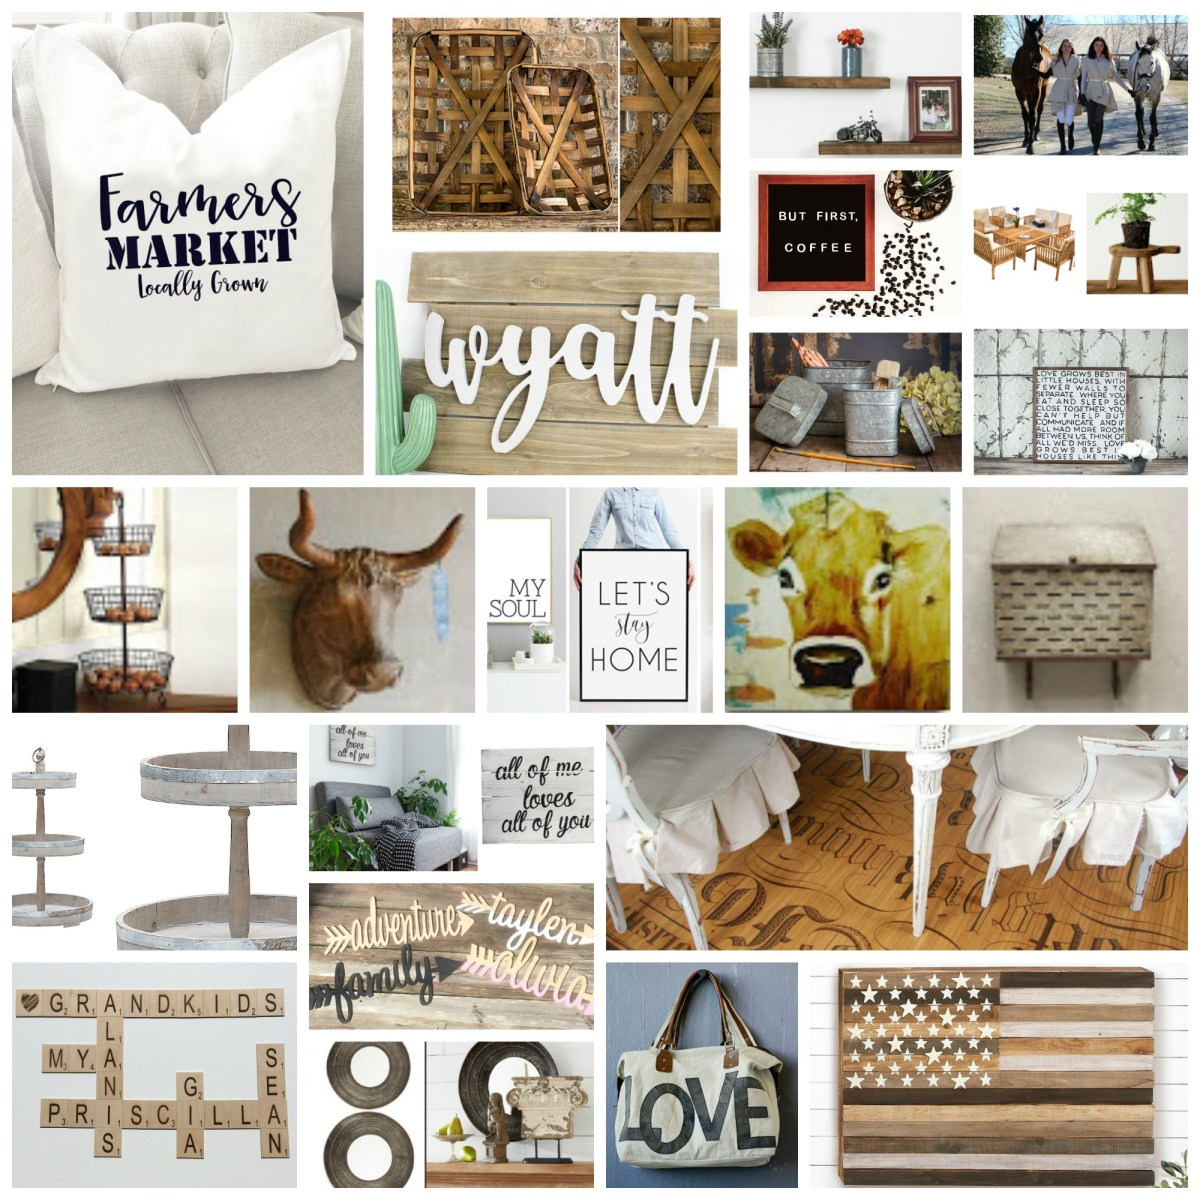 Home Decor Daily Deals: Tuesday, March 7, 2017